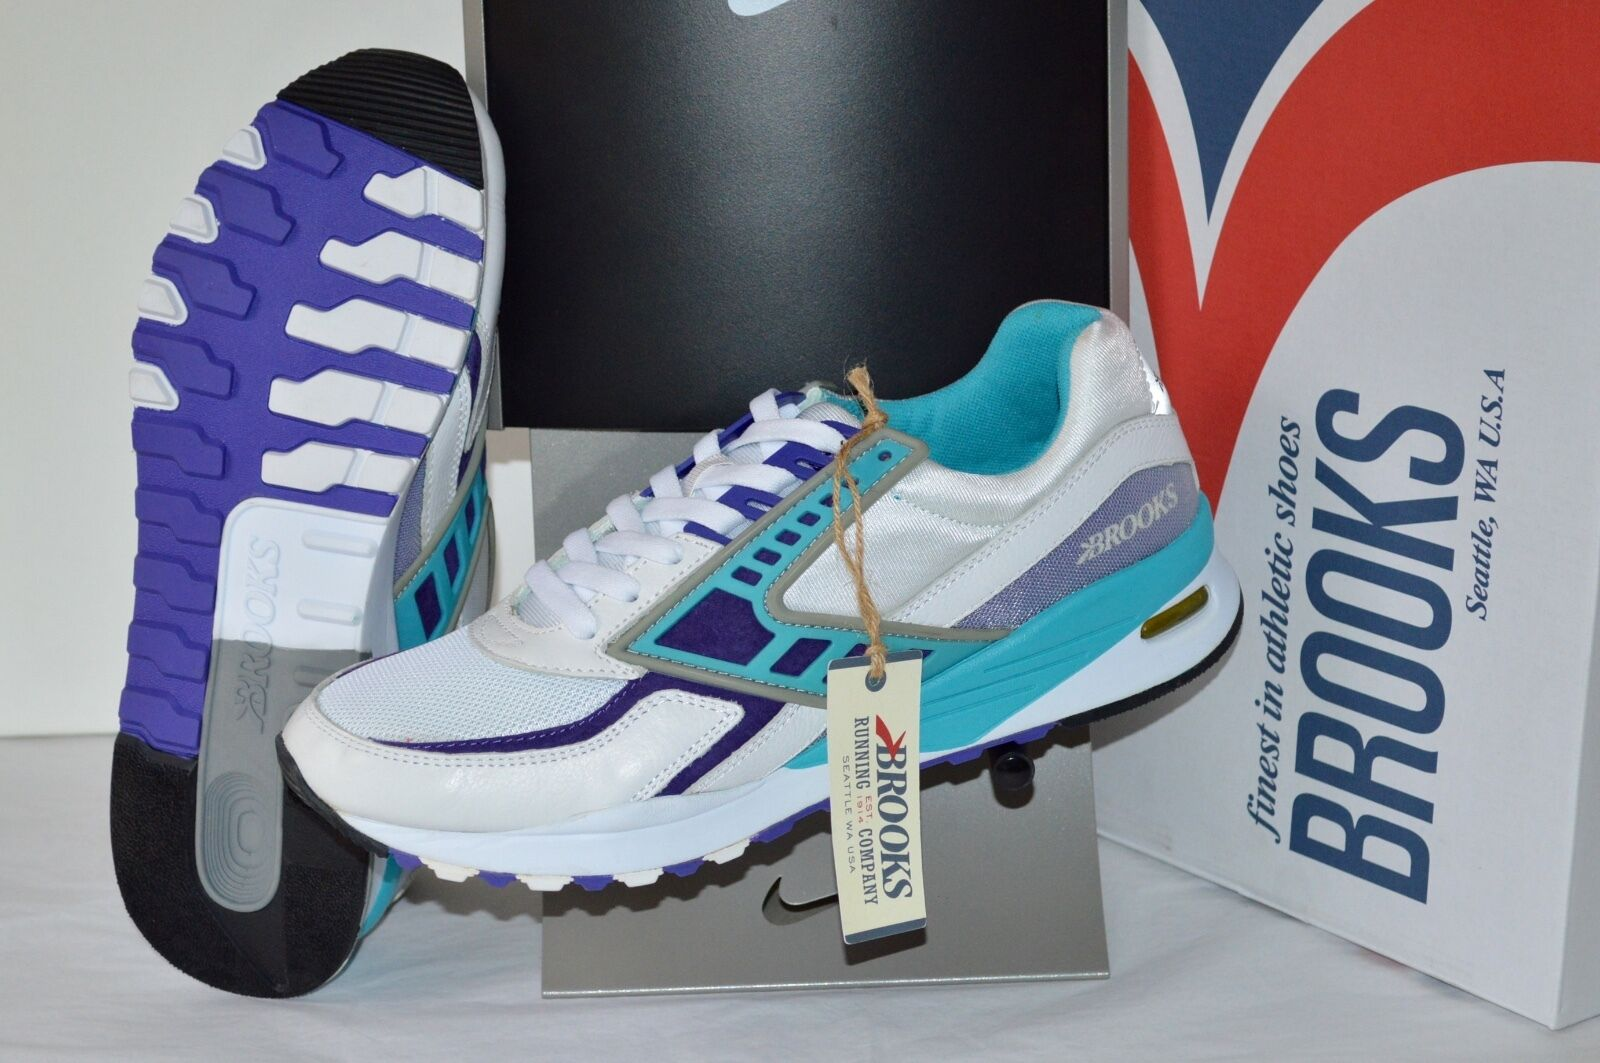 New 149 Brooks Regent White/Purple Opulance/Scuba Blue sz 11 110205-1D559 Retro